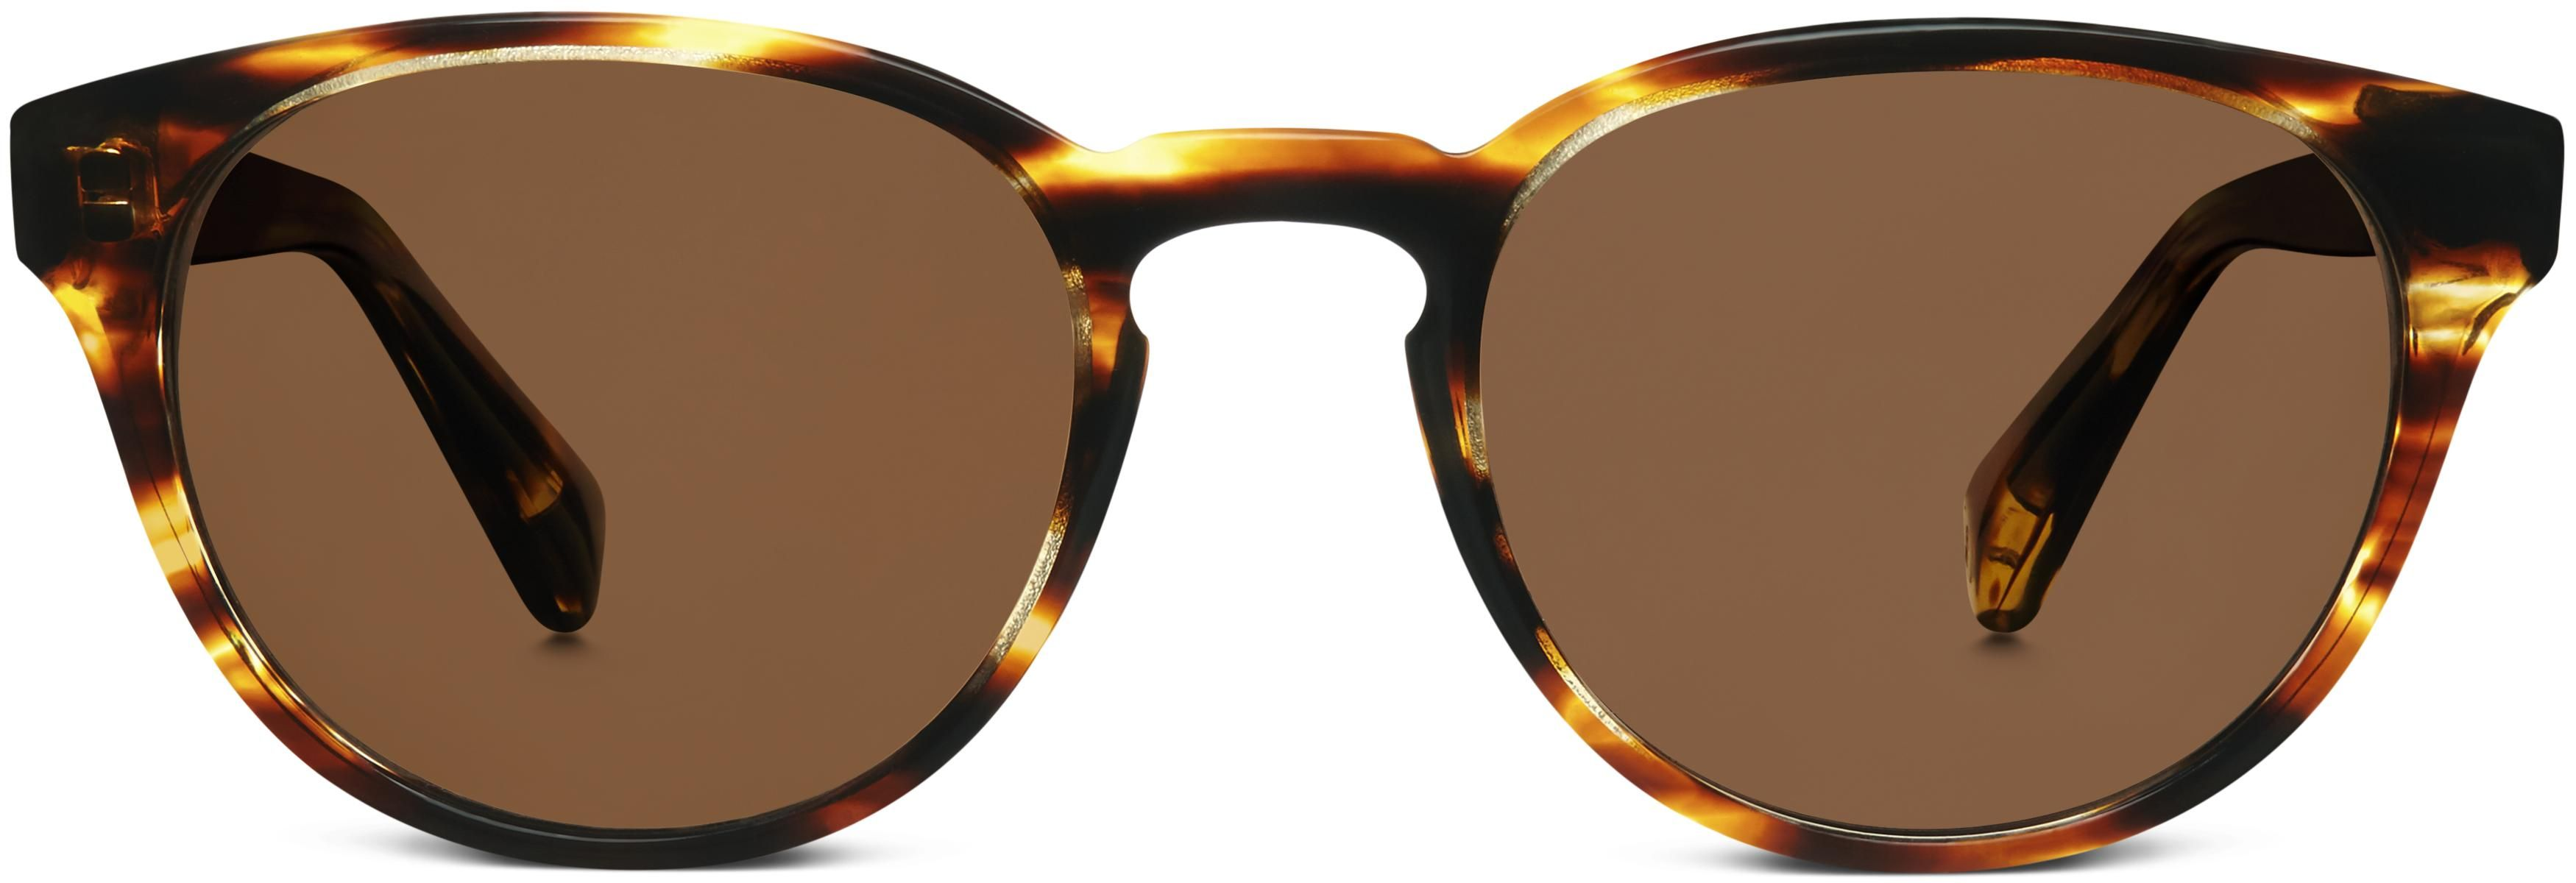 Percey Sunglasses in Striped Sassafras with Classic Brown lenses for ...